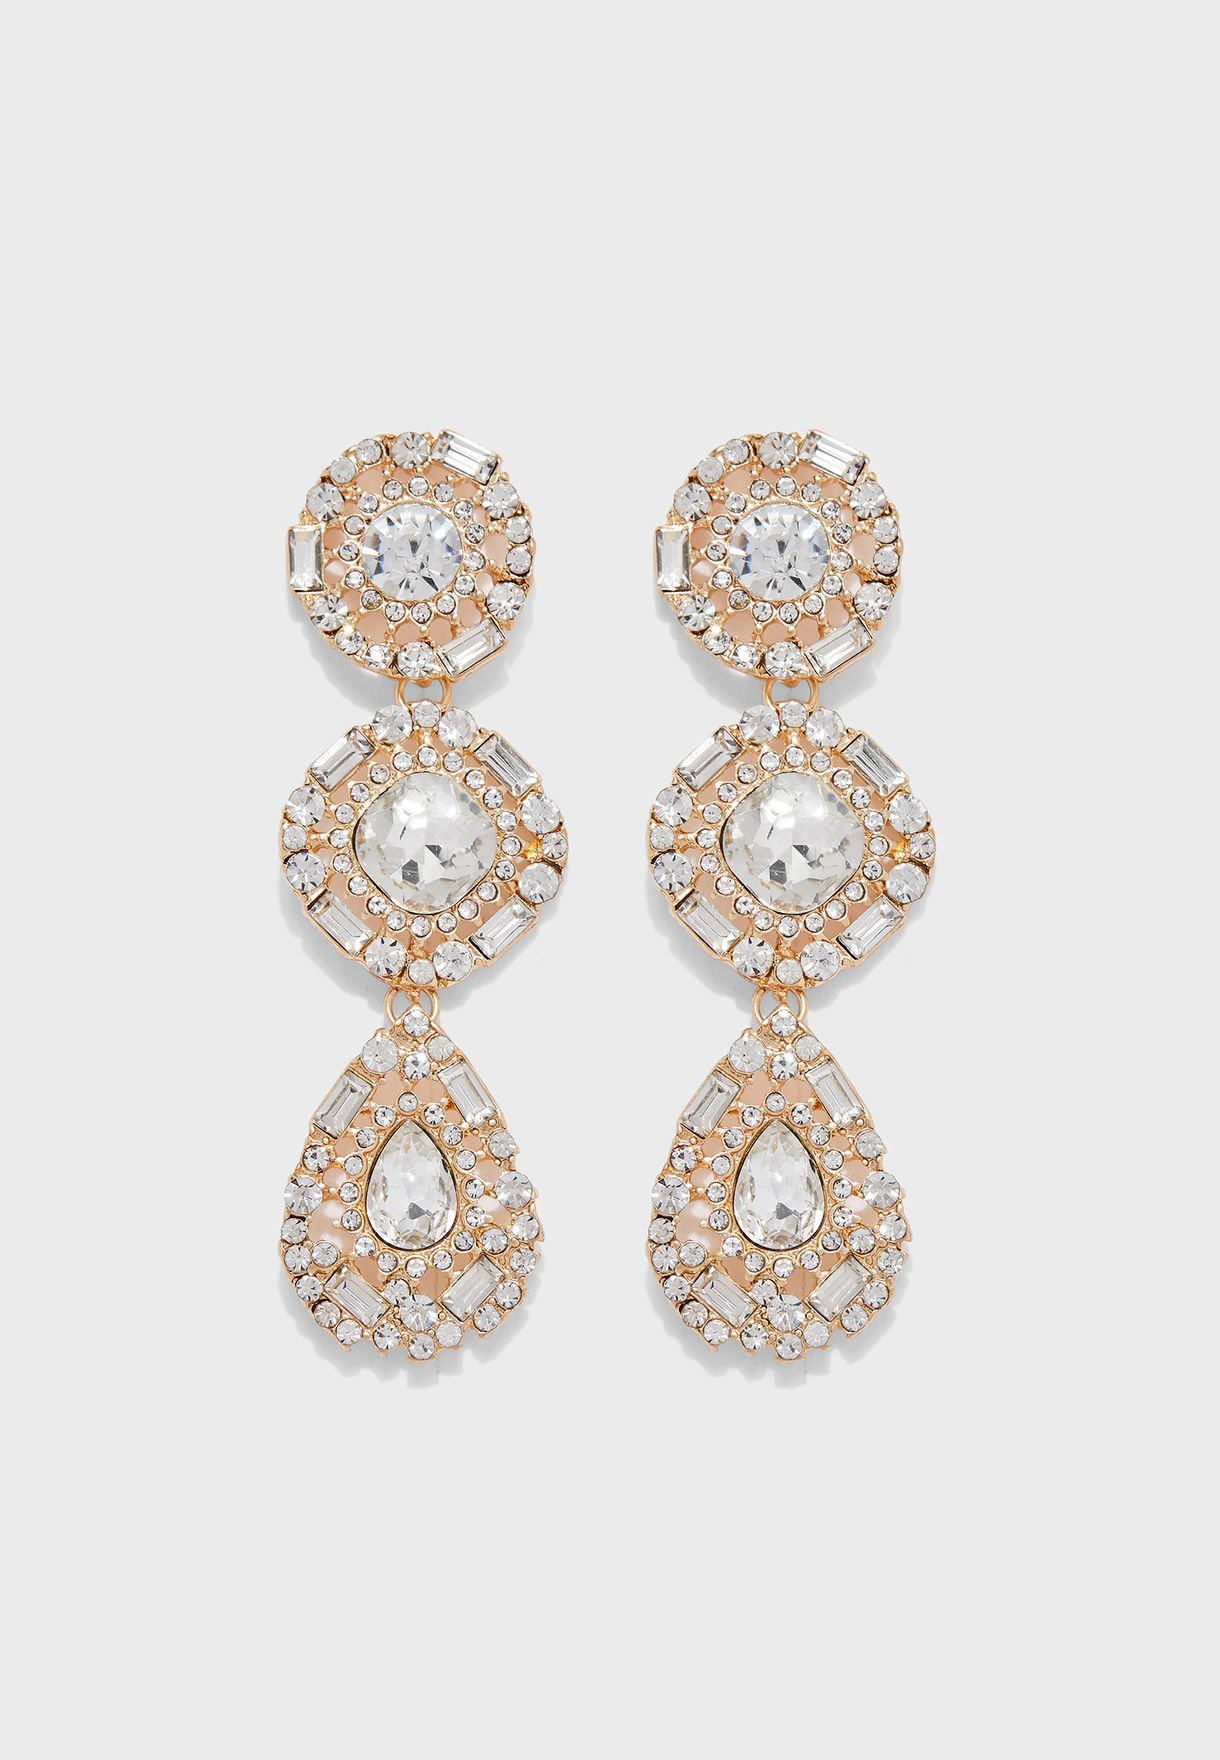 Queen Drop Earrings